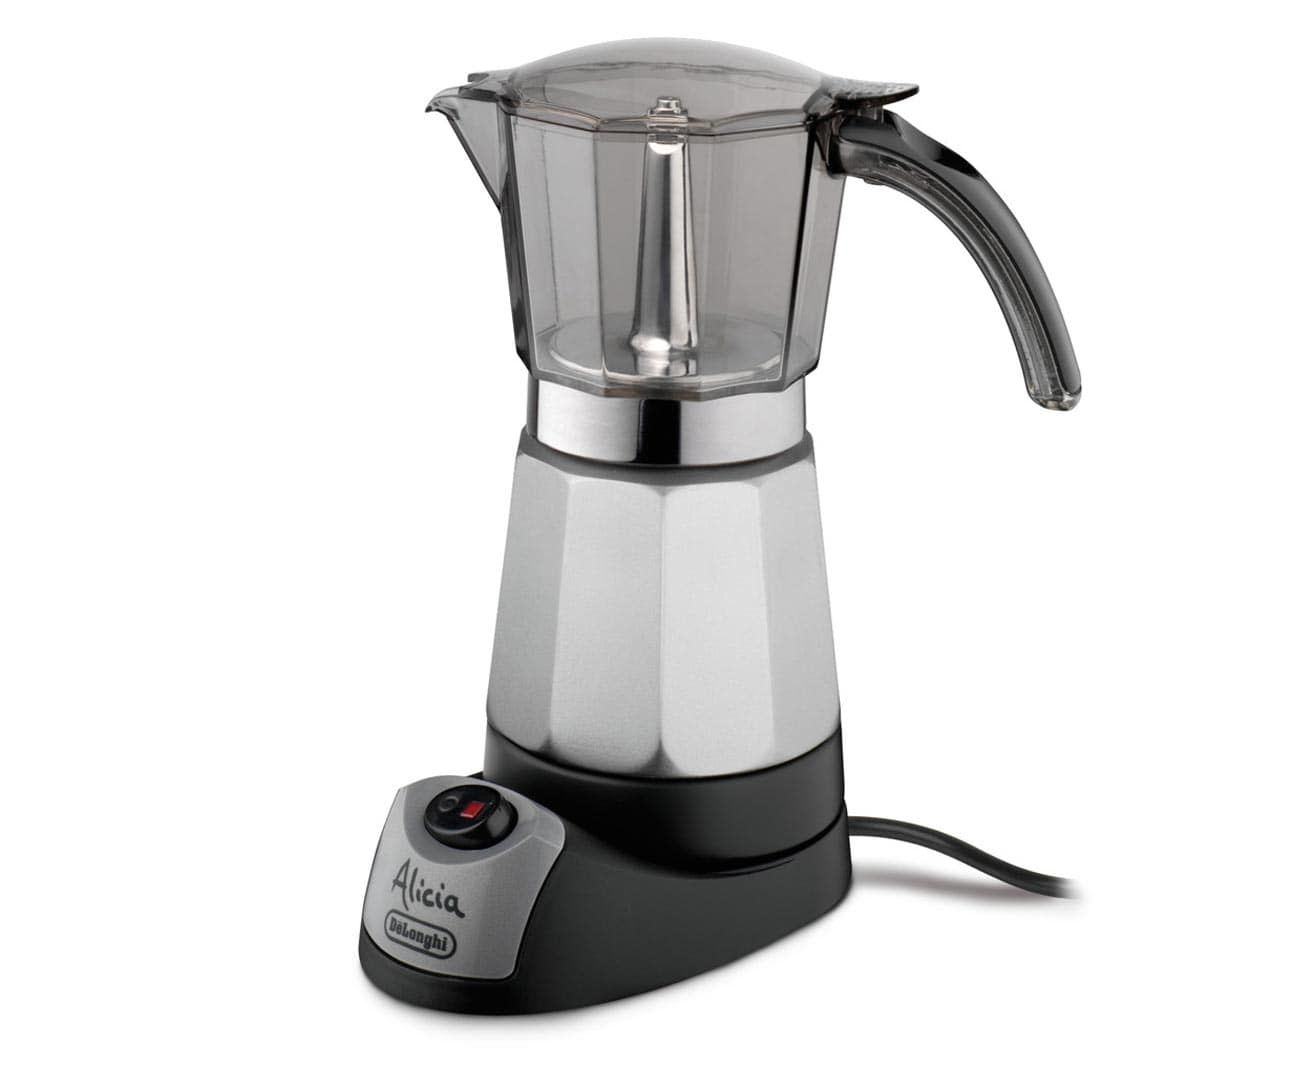 Saving an Electrical Coffee Maker by Making It Non-electrical